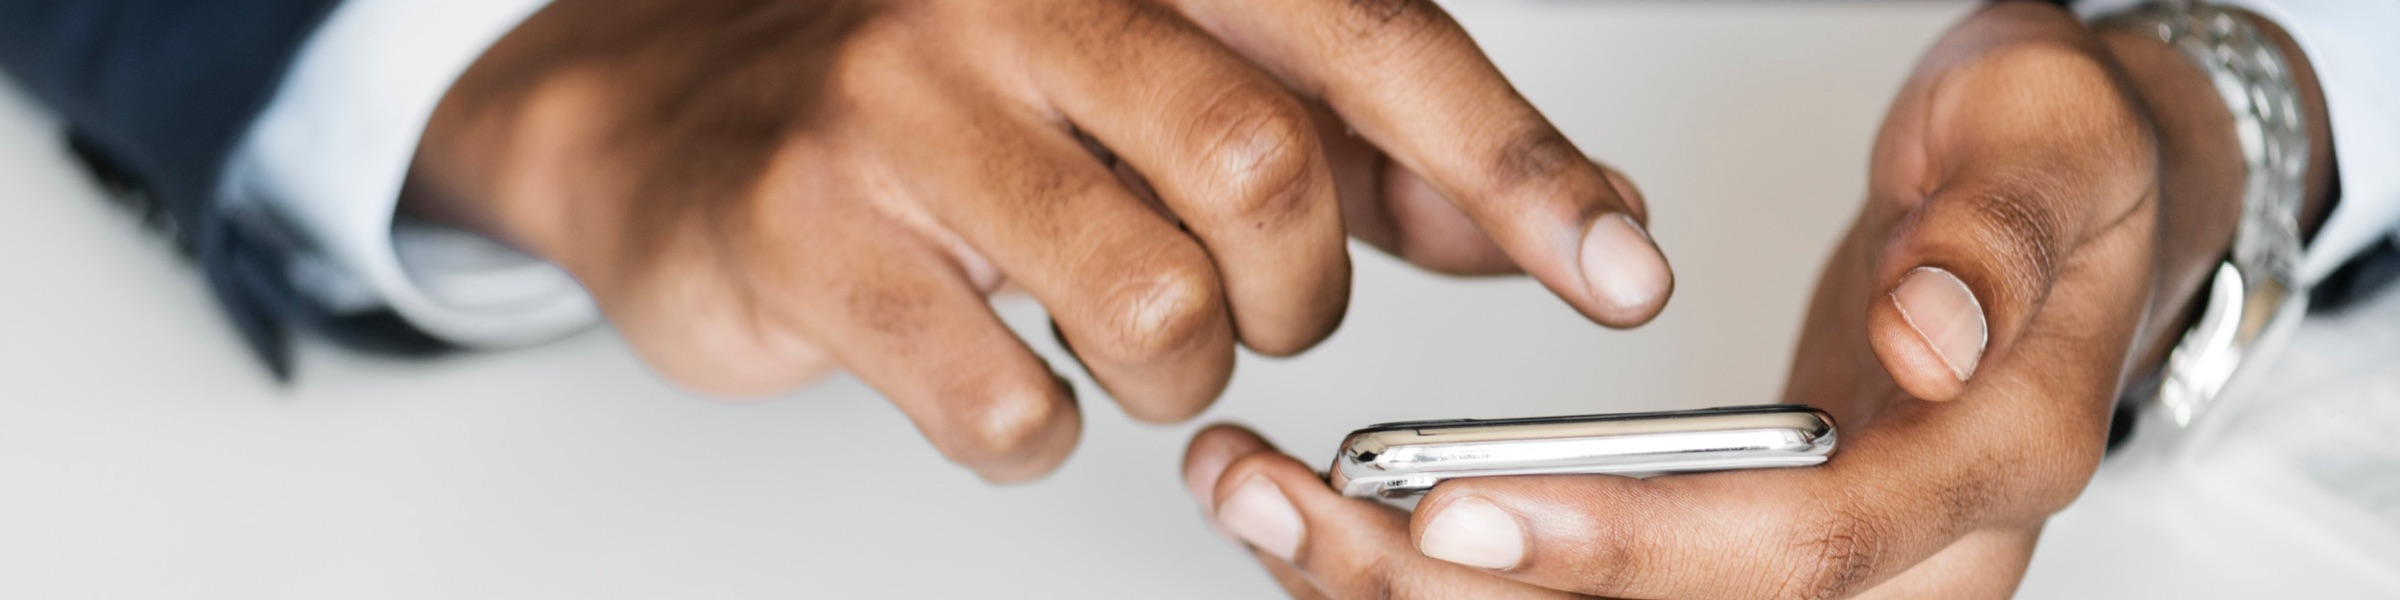 a close up of a business man's hands while he is using his phone to text someone